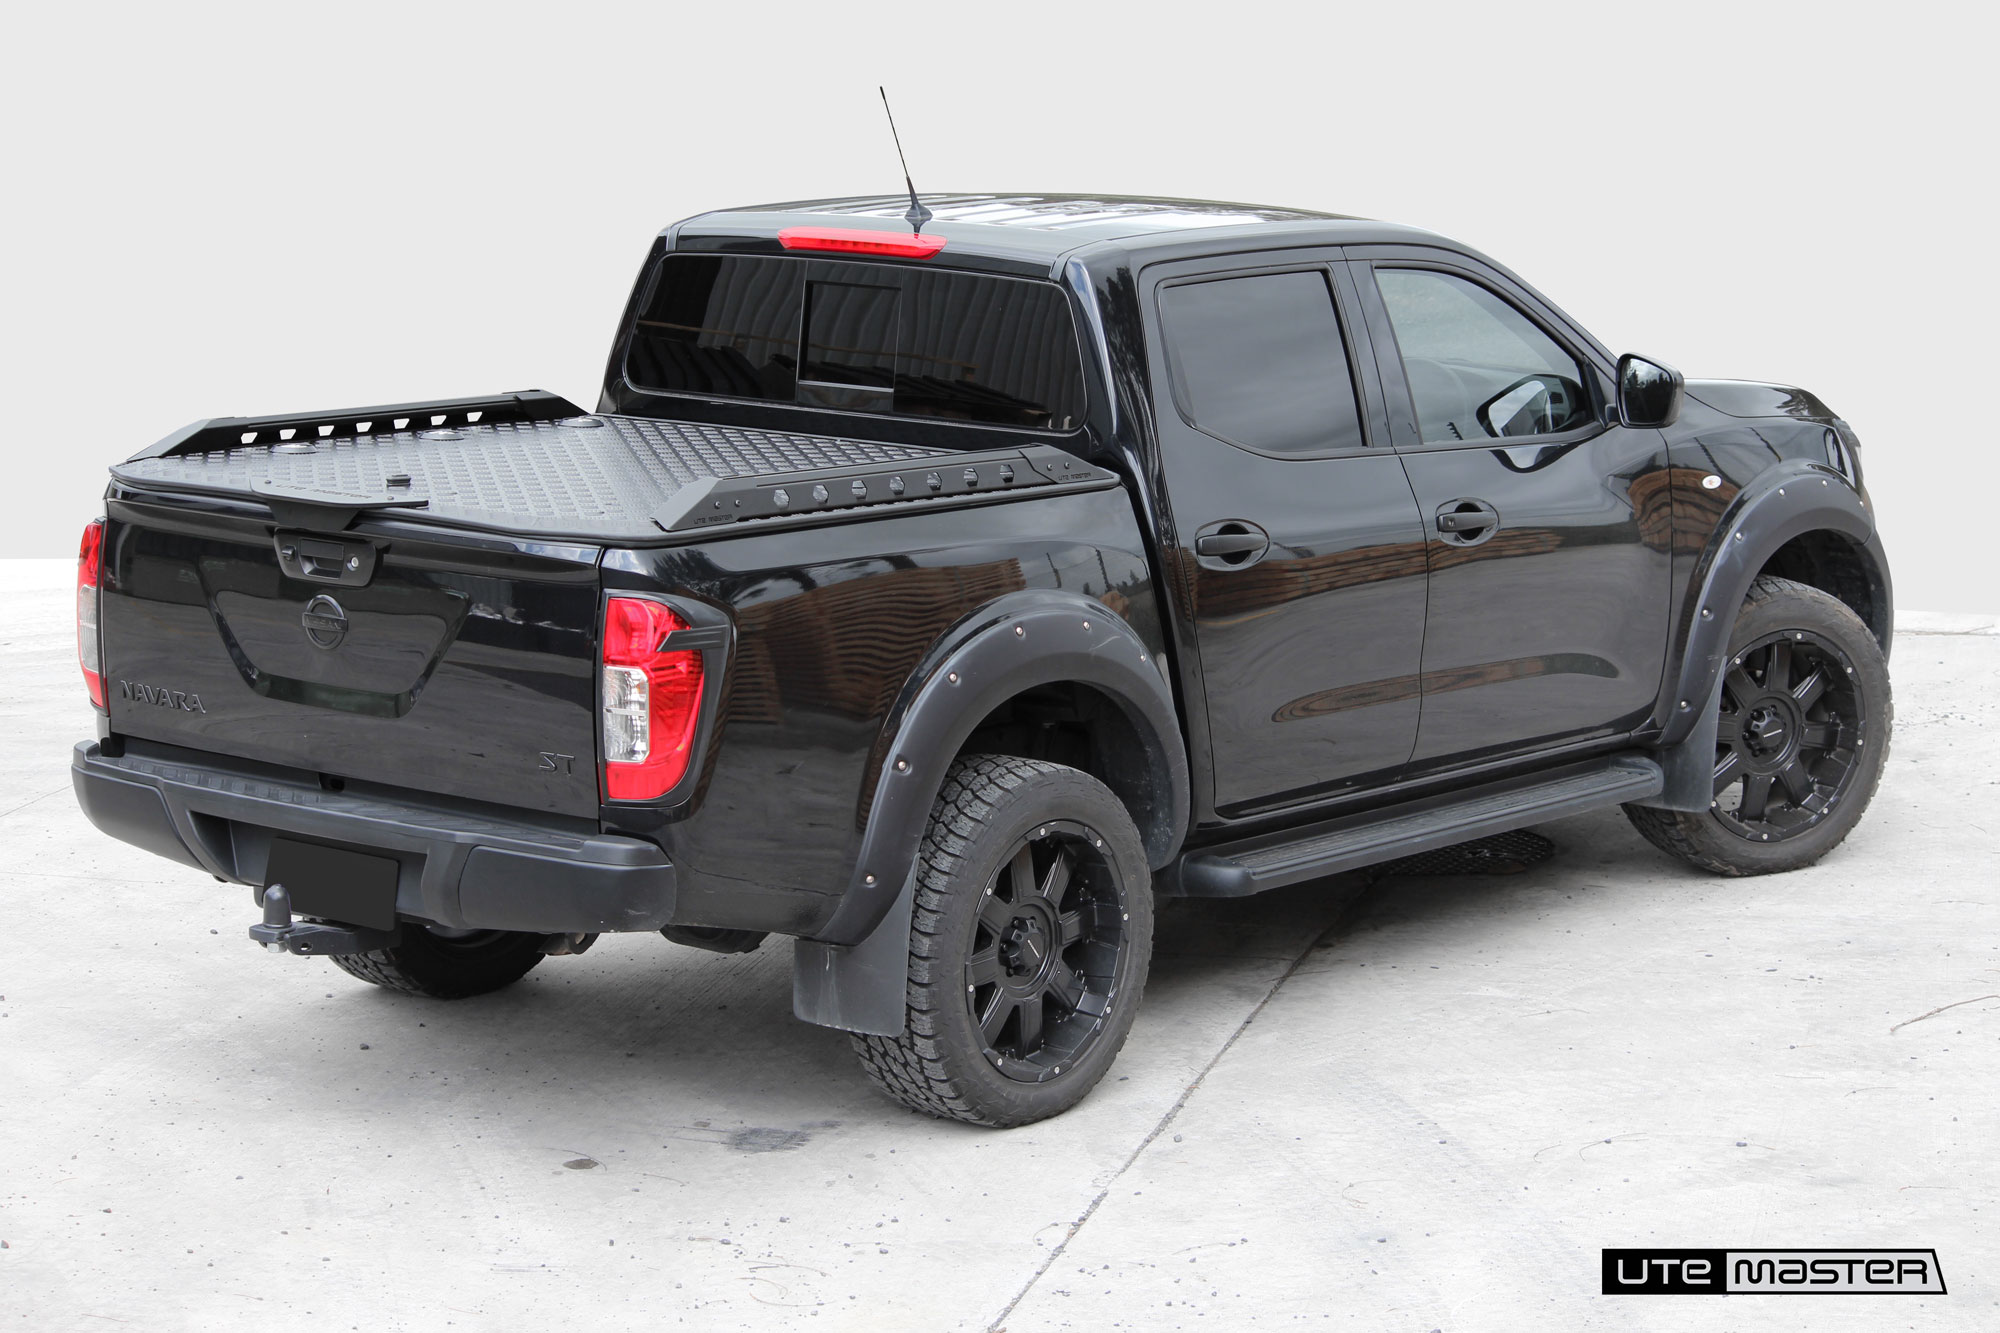 Hard Lid to suit Nissan Navara_4x4_Offroad Adventure Utemaster Load-Lid Roller Shutter and Tonneau Cover Alternative